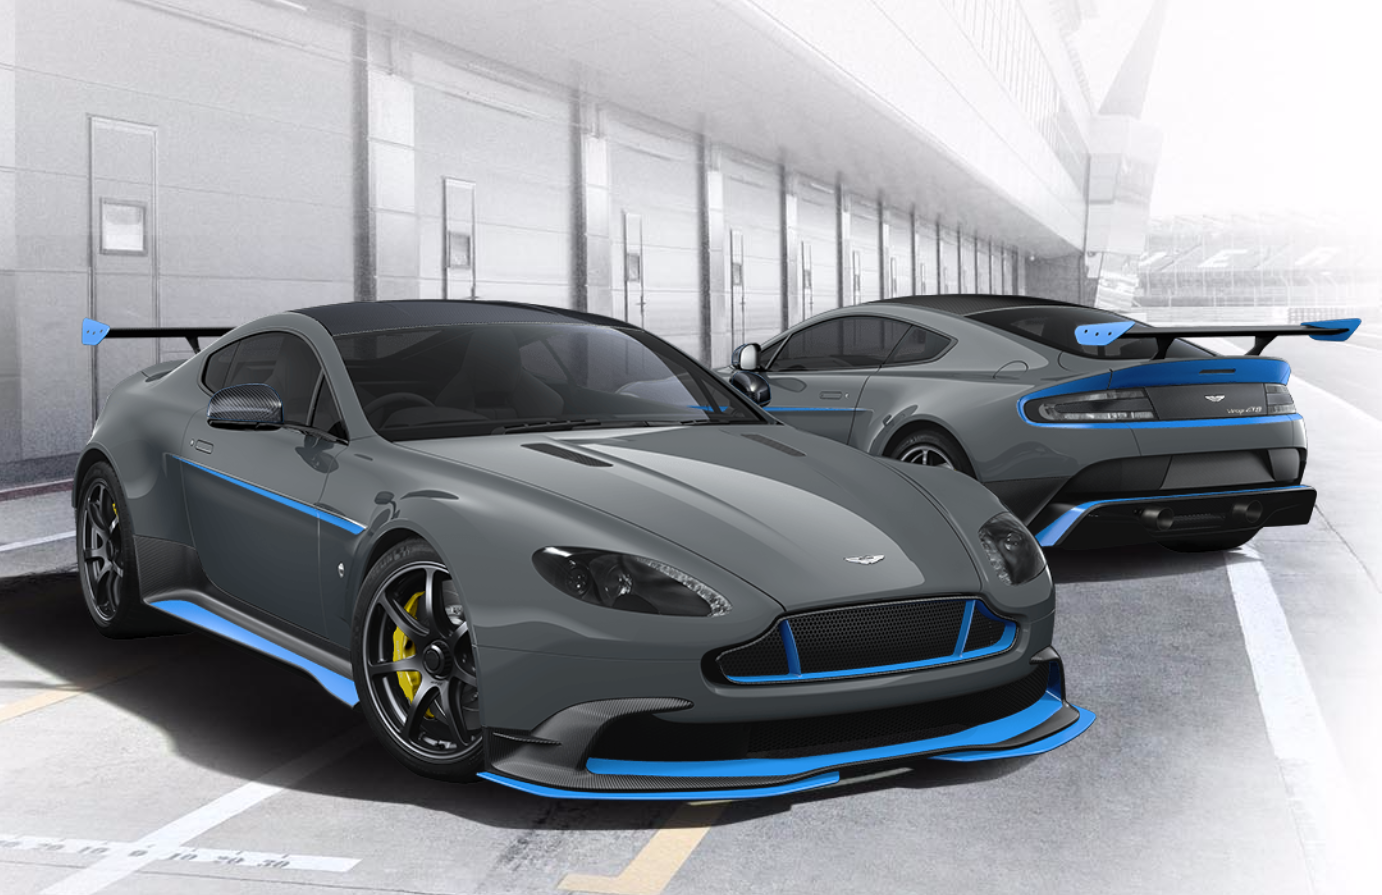 Go Build Your Own Aston Martin Vantage GT - Build your own aston martin